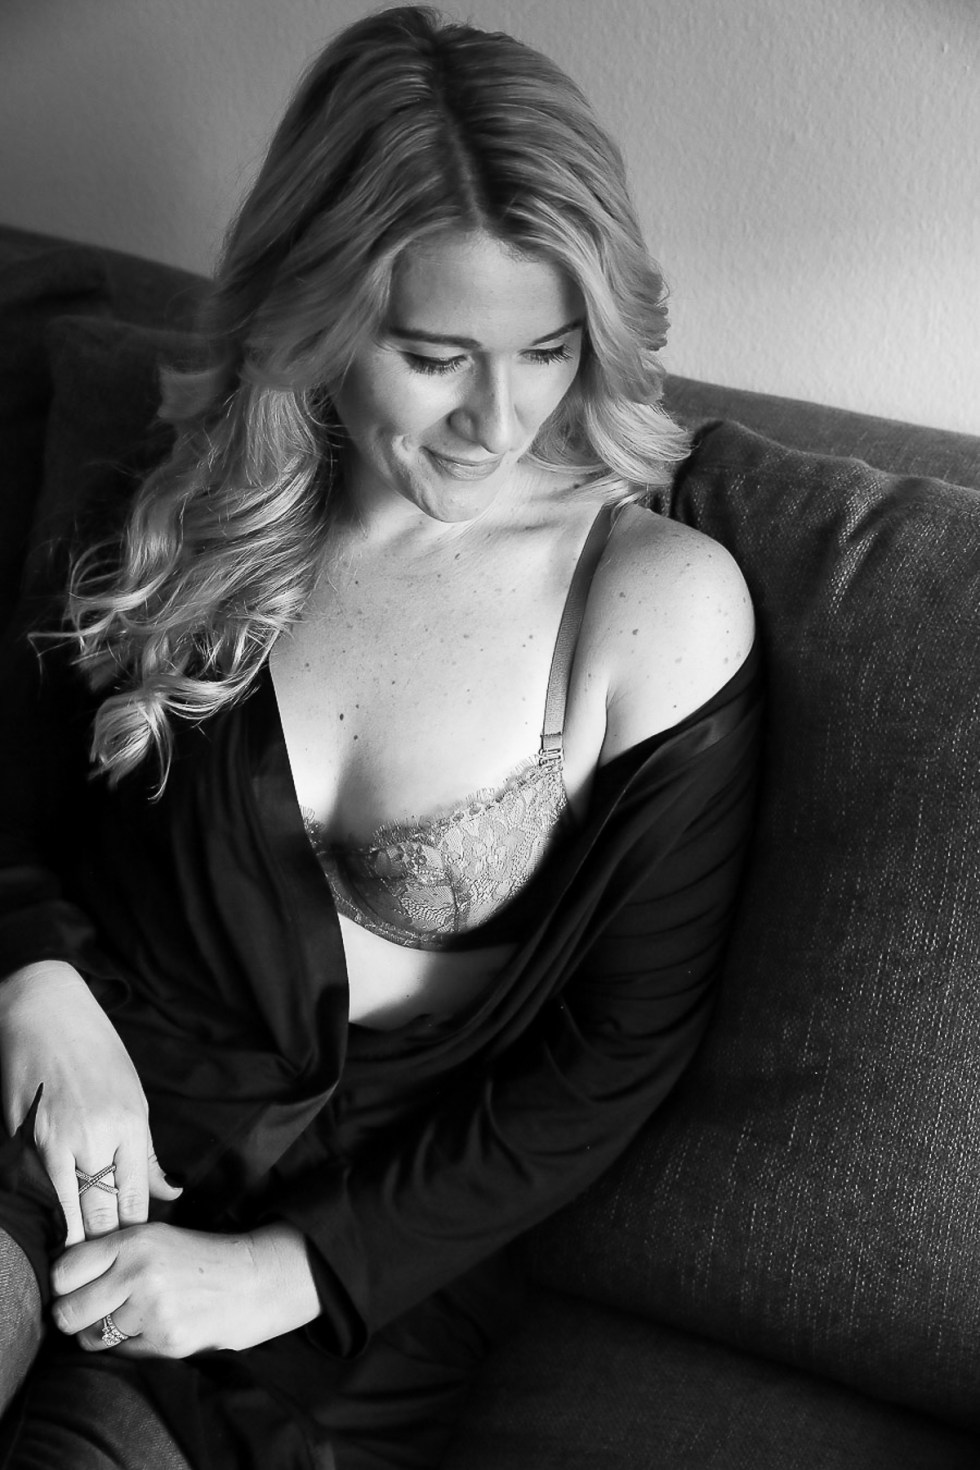 Luci on Couch in black and white - sustainable undergarments writeup